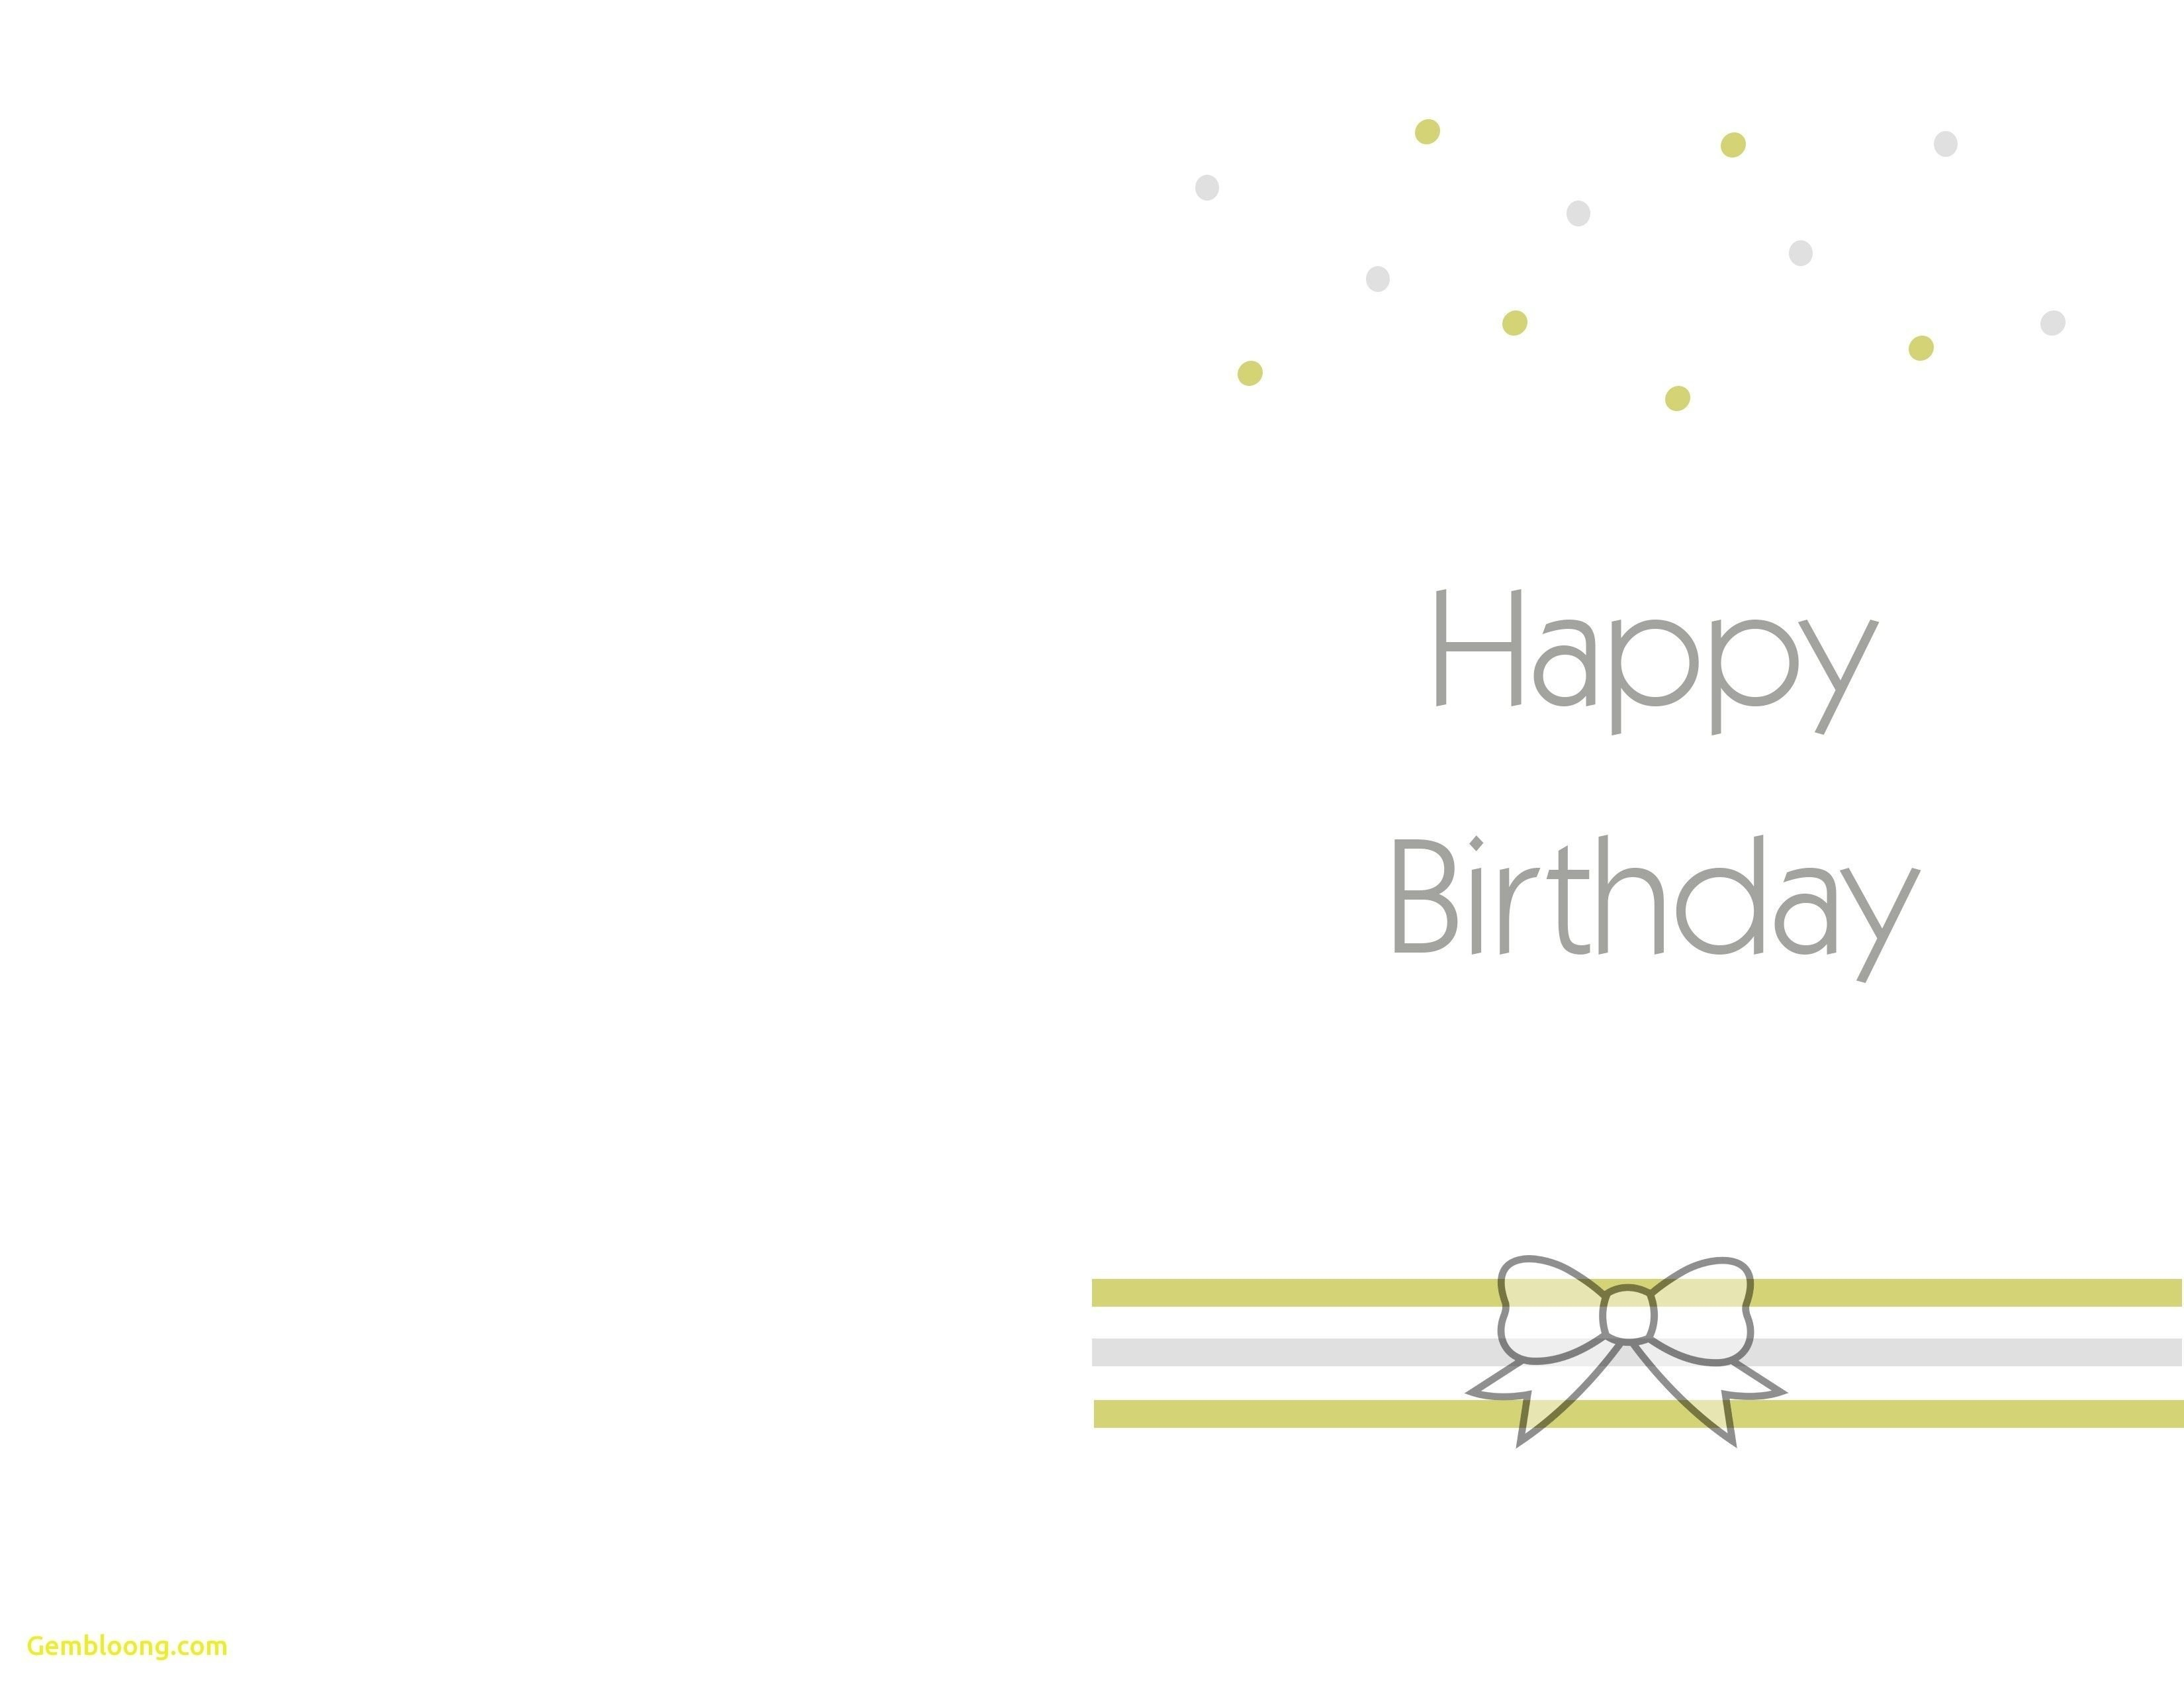 Printable Birthday Cards Foldable  Theveliger Pertaining To Foldable Birthday Card Template